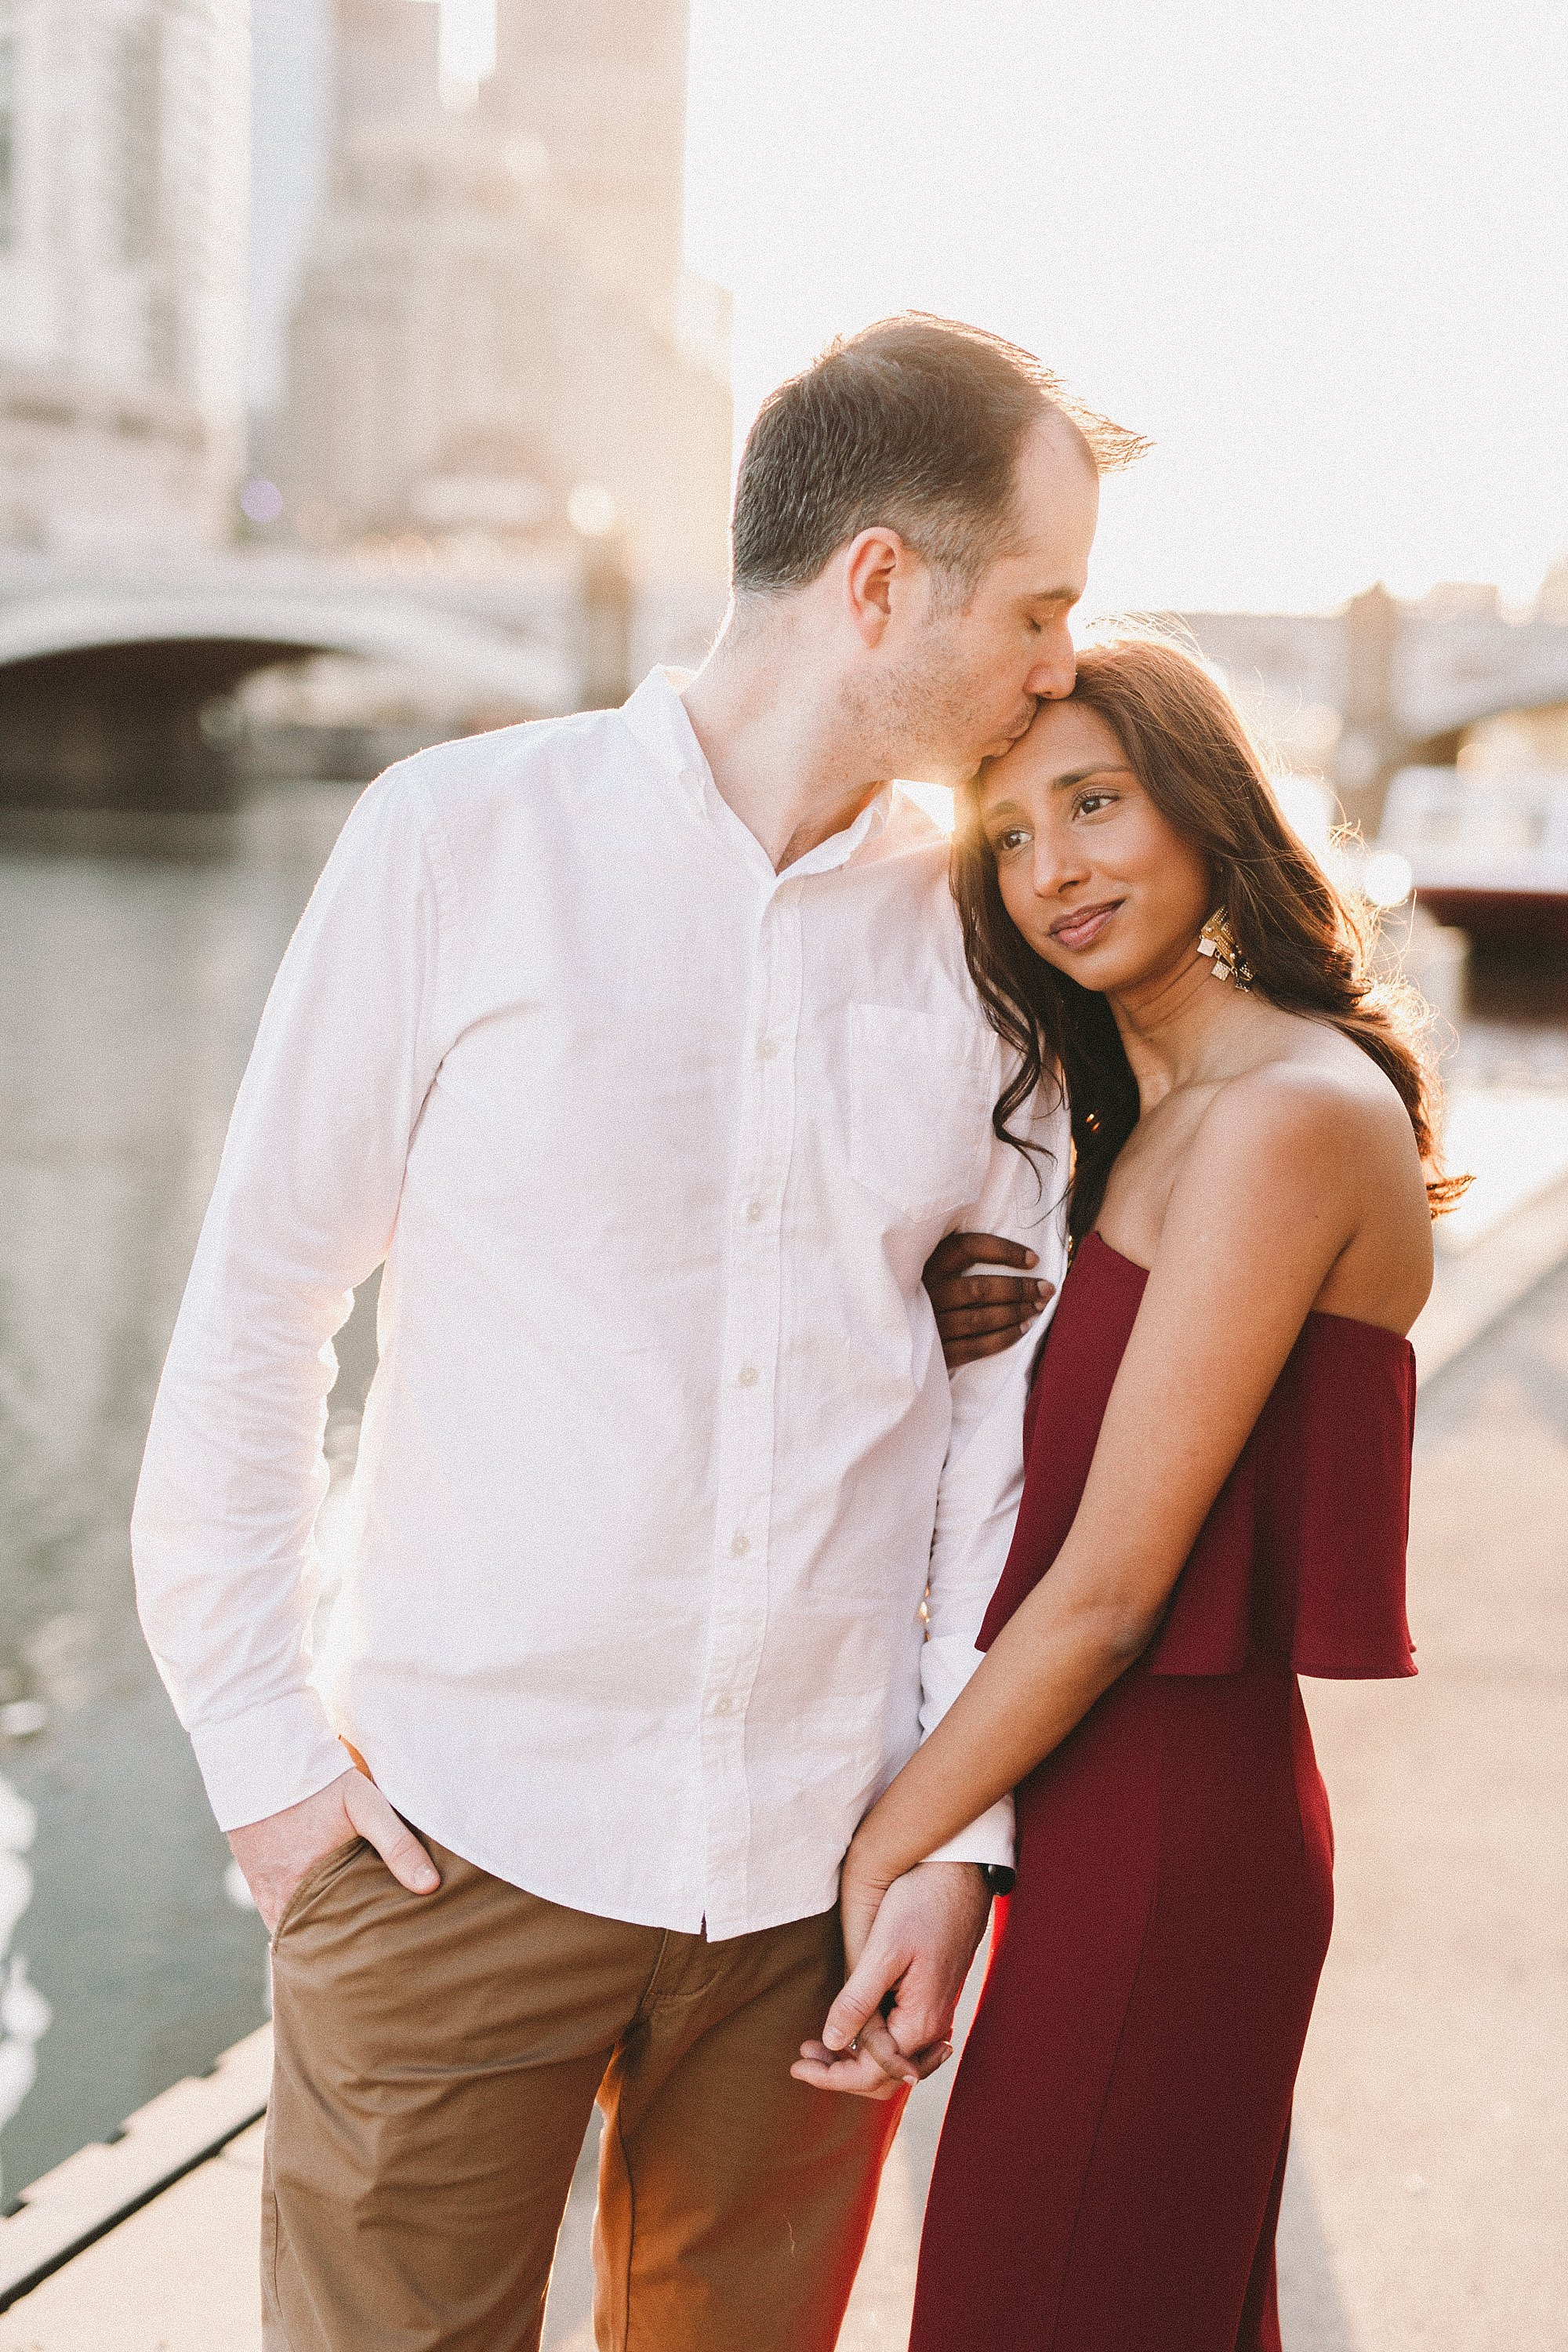 Melbourne Natural and Fun Engagement Wedding Photographer 195.JPG